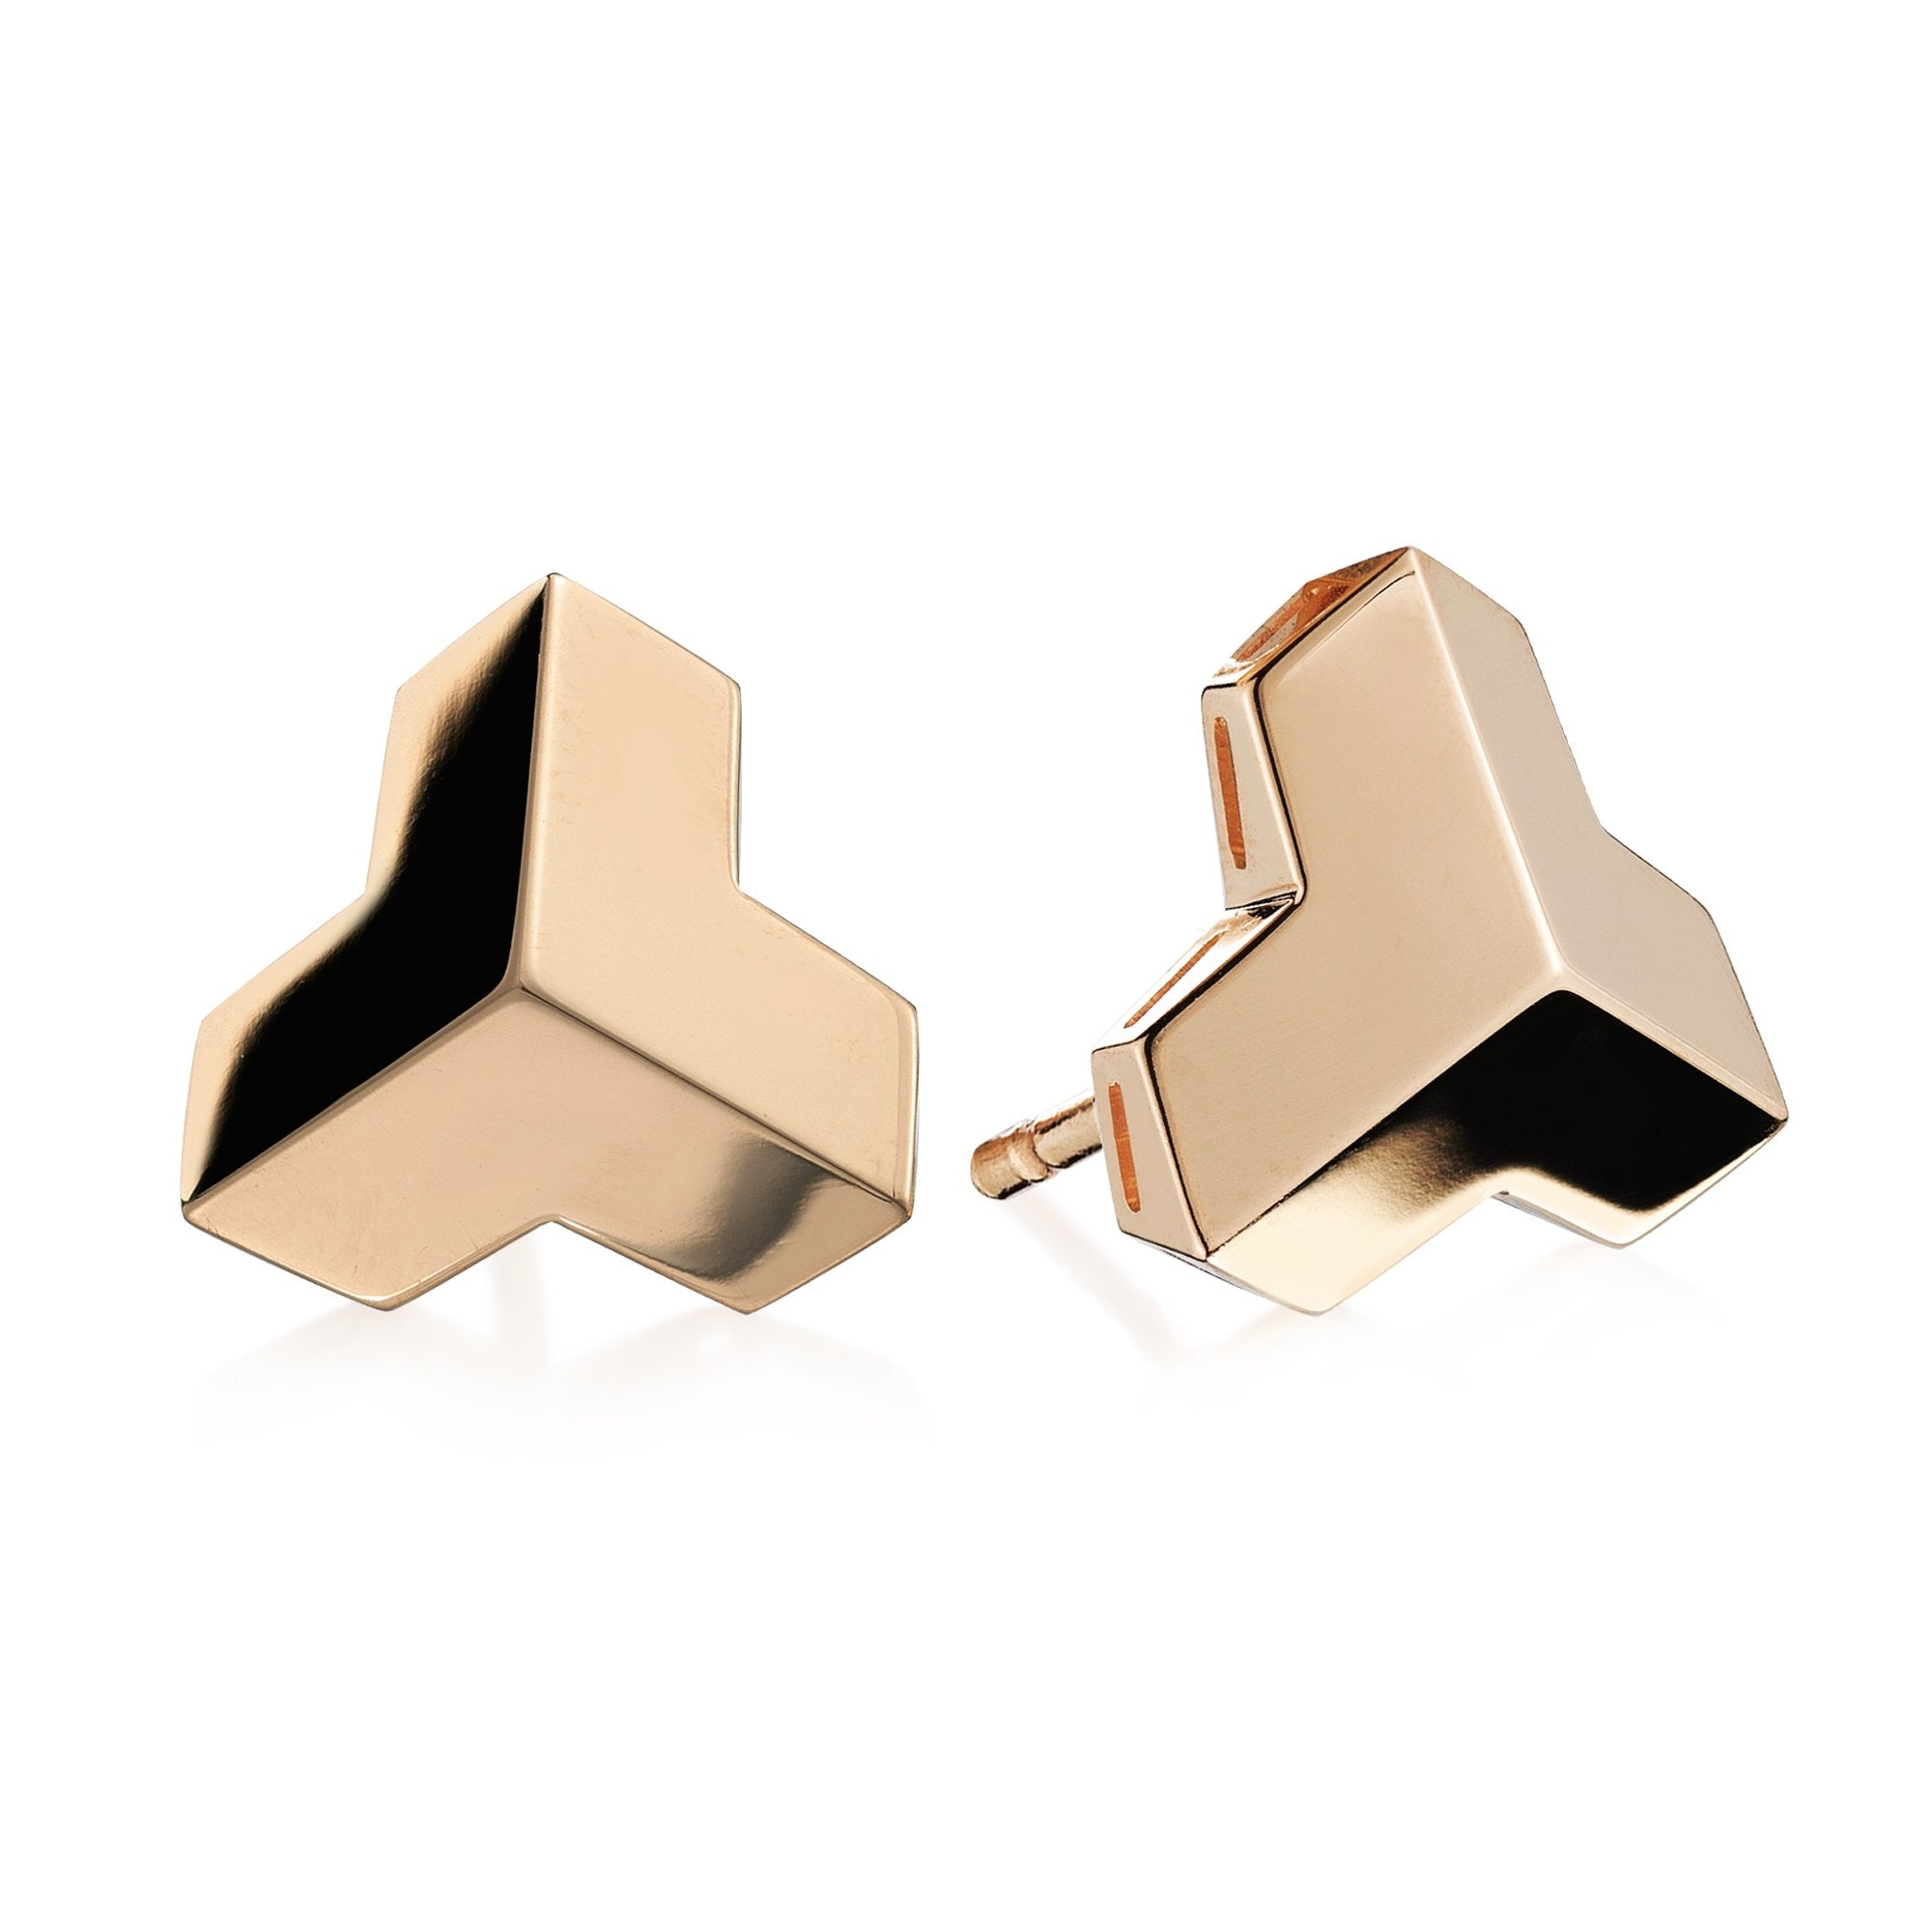 Rose Gold 'Brillantissimo' Stud Earrings, petite. - Paolo Costagli - 1